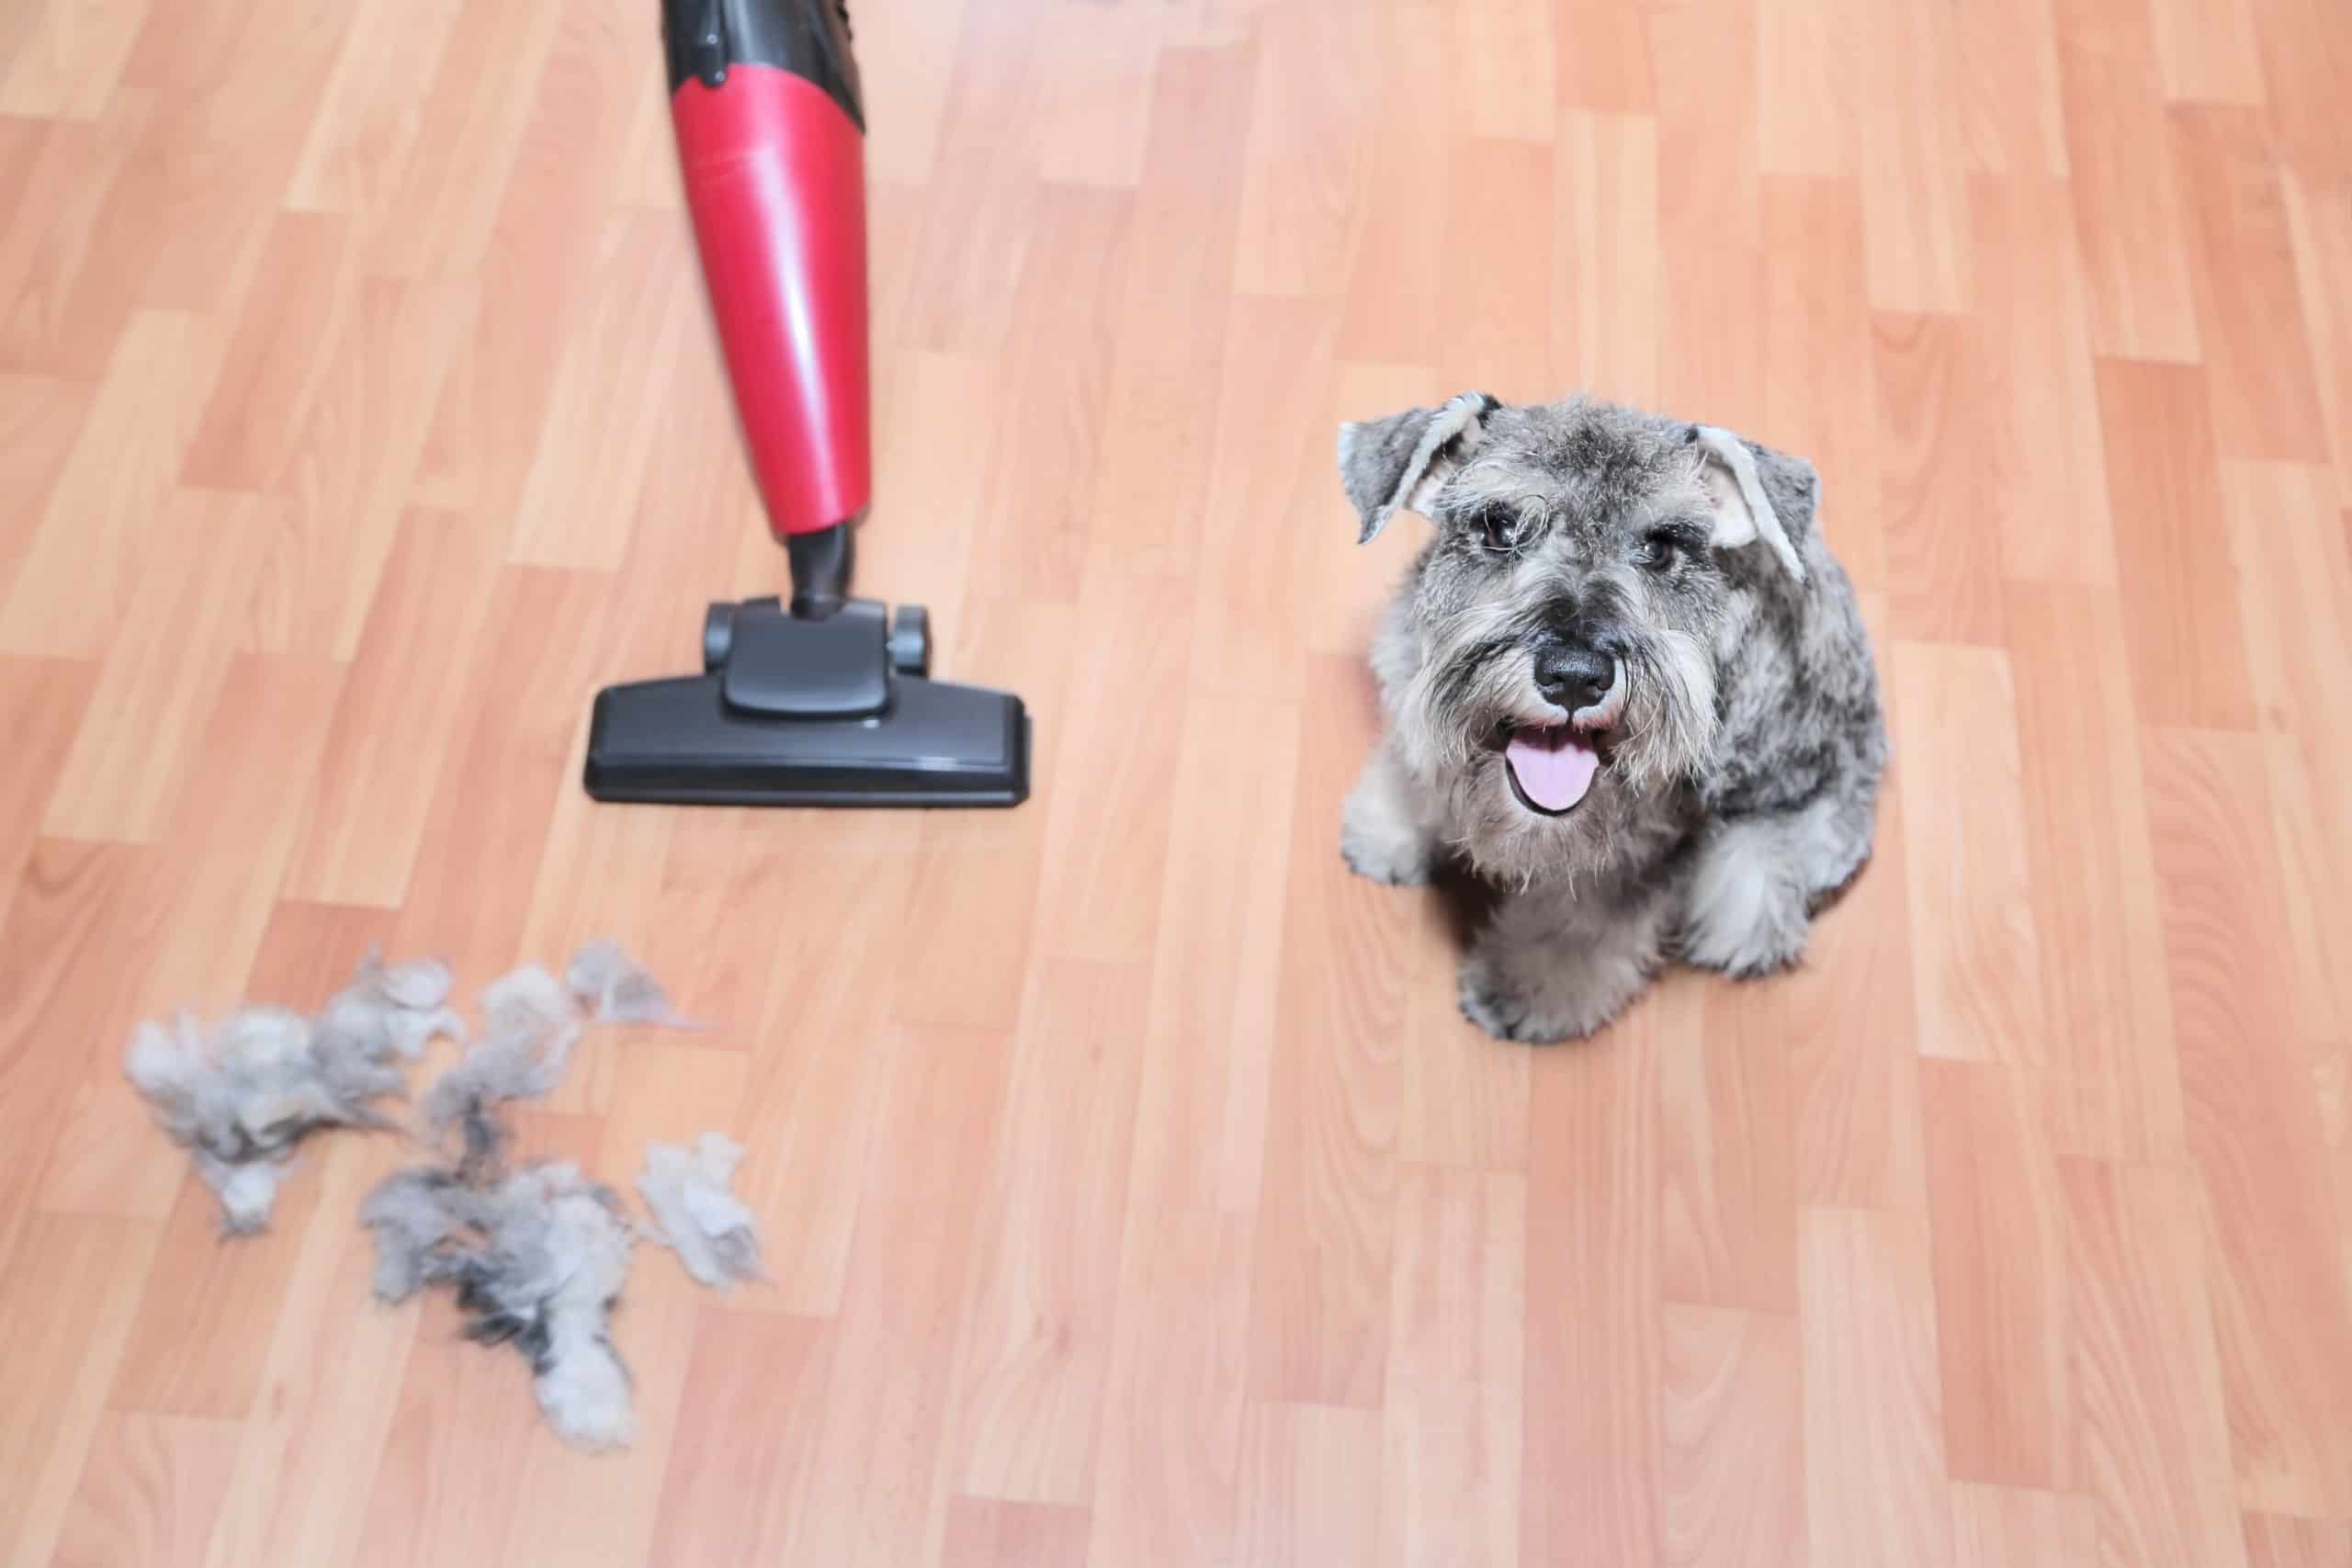 Cute little gray dog sits near vacuum cleaner and pile of loose dog hair. Vacuum your dog to reduce dog shedding.